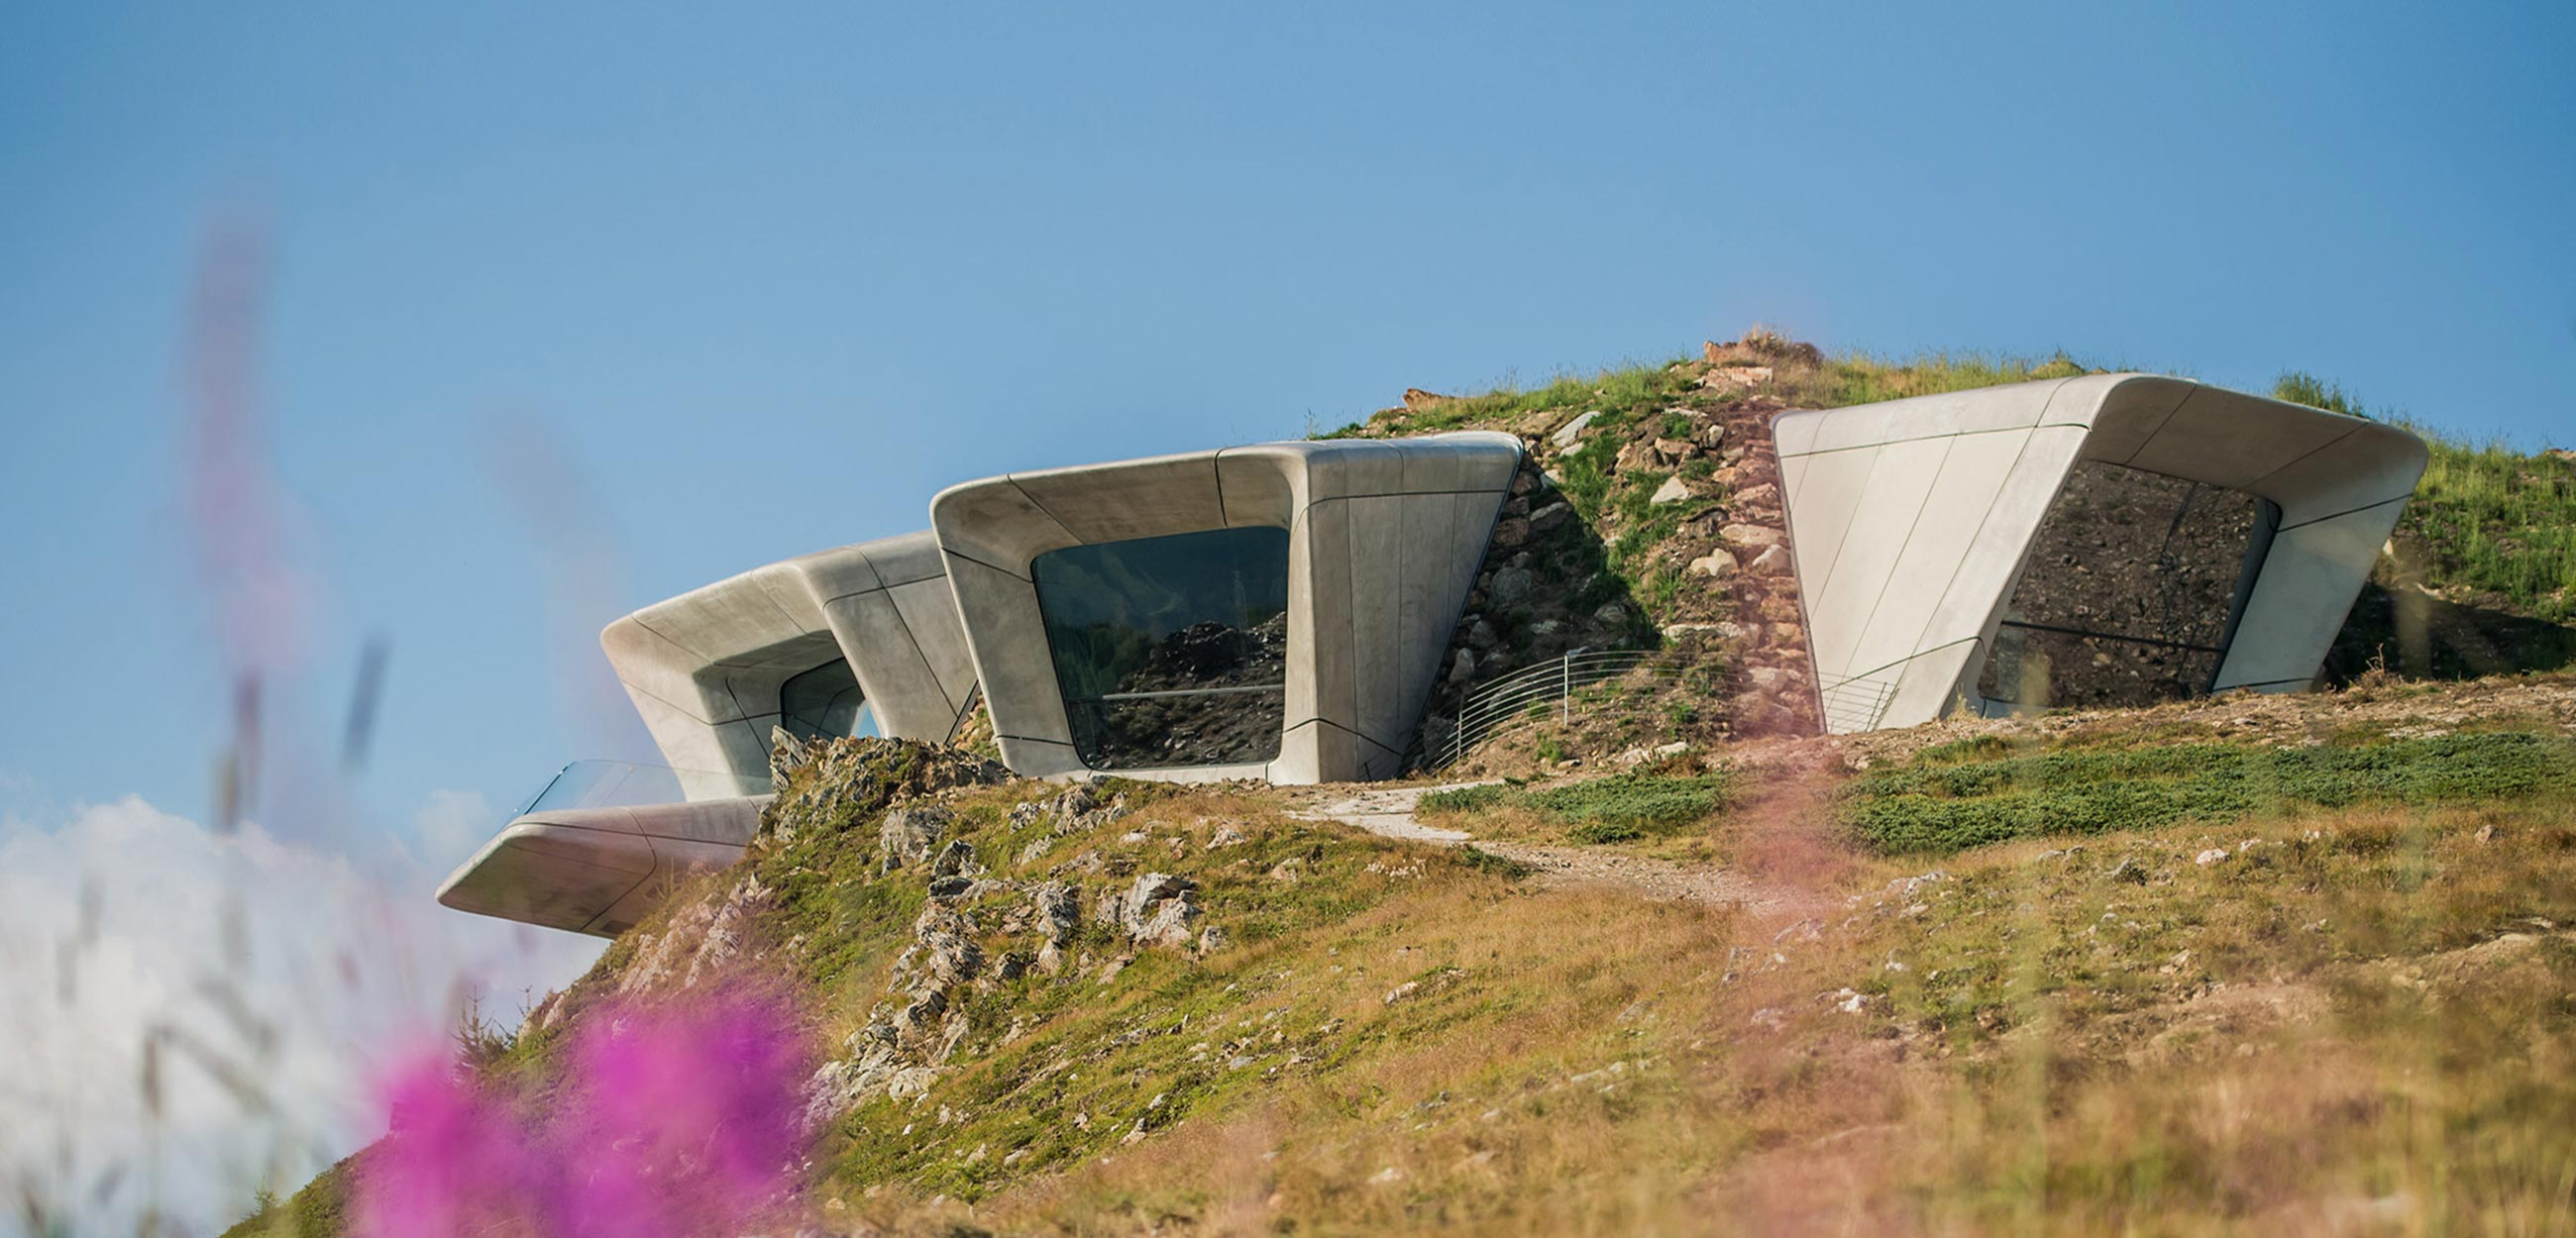 MMM - Mountain Messner Museum in Südtirol